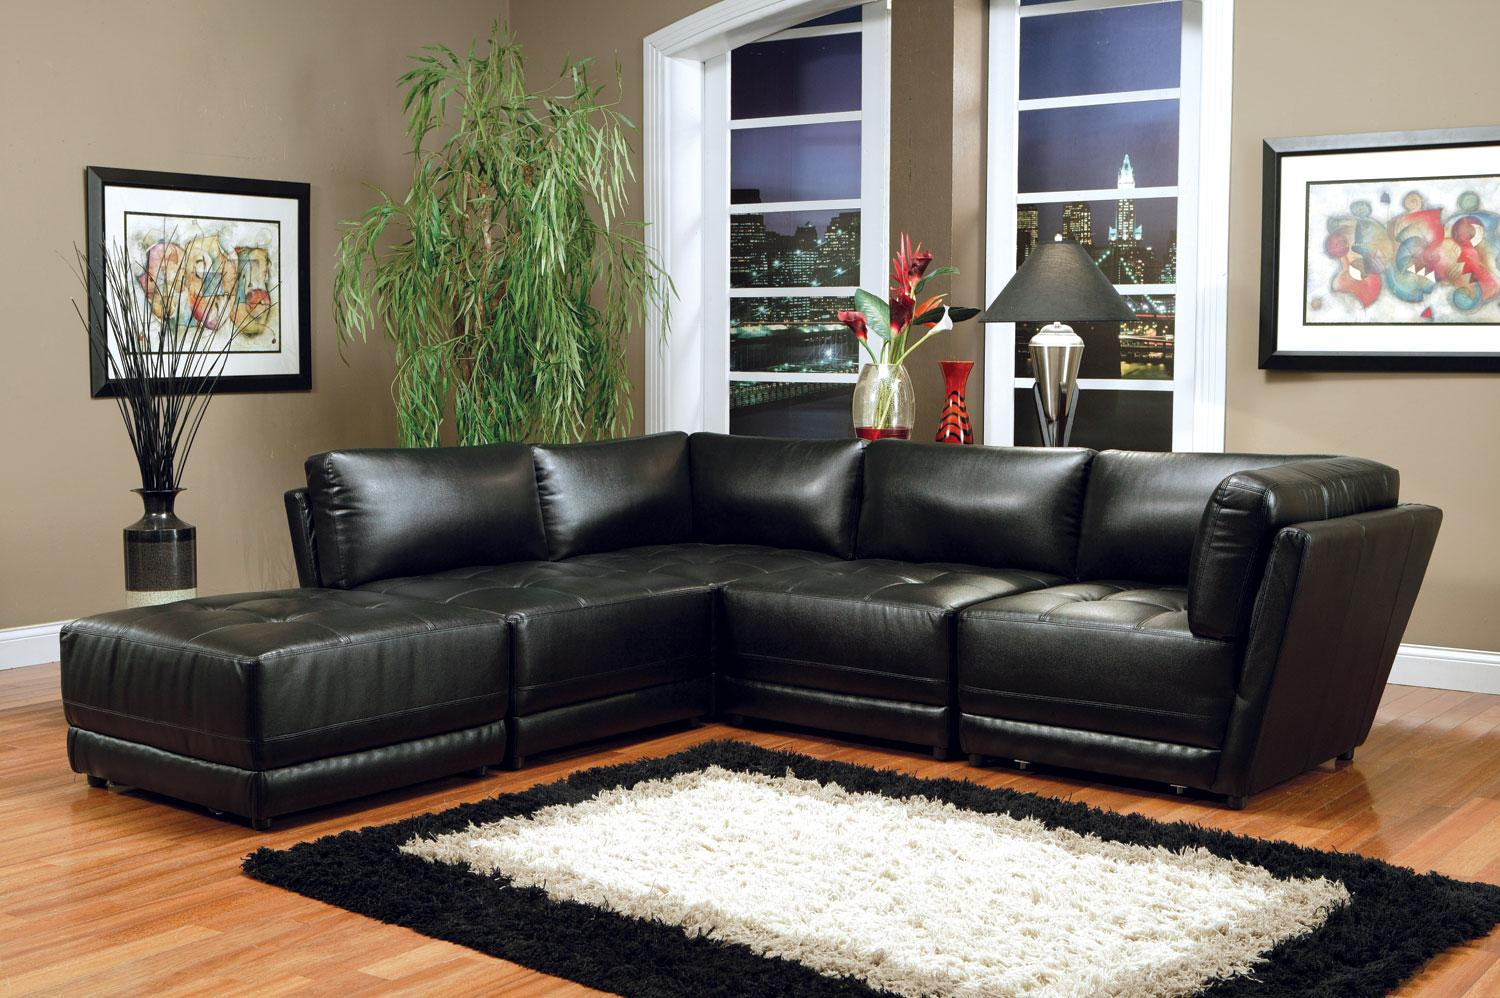 Coaster Kayson Black 5pc Modular Sectional Dallas Tx Living Room Sectional Furniture Nation